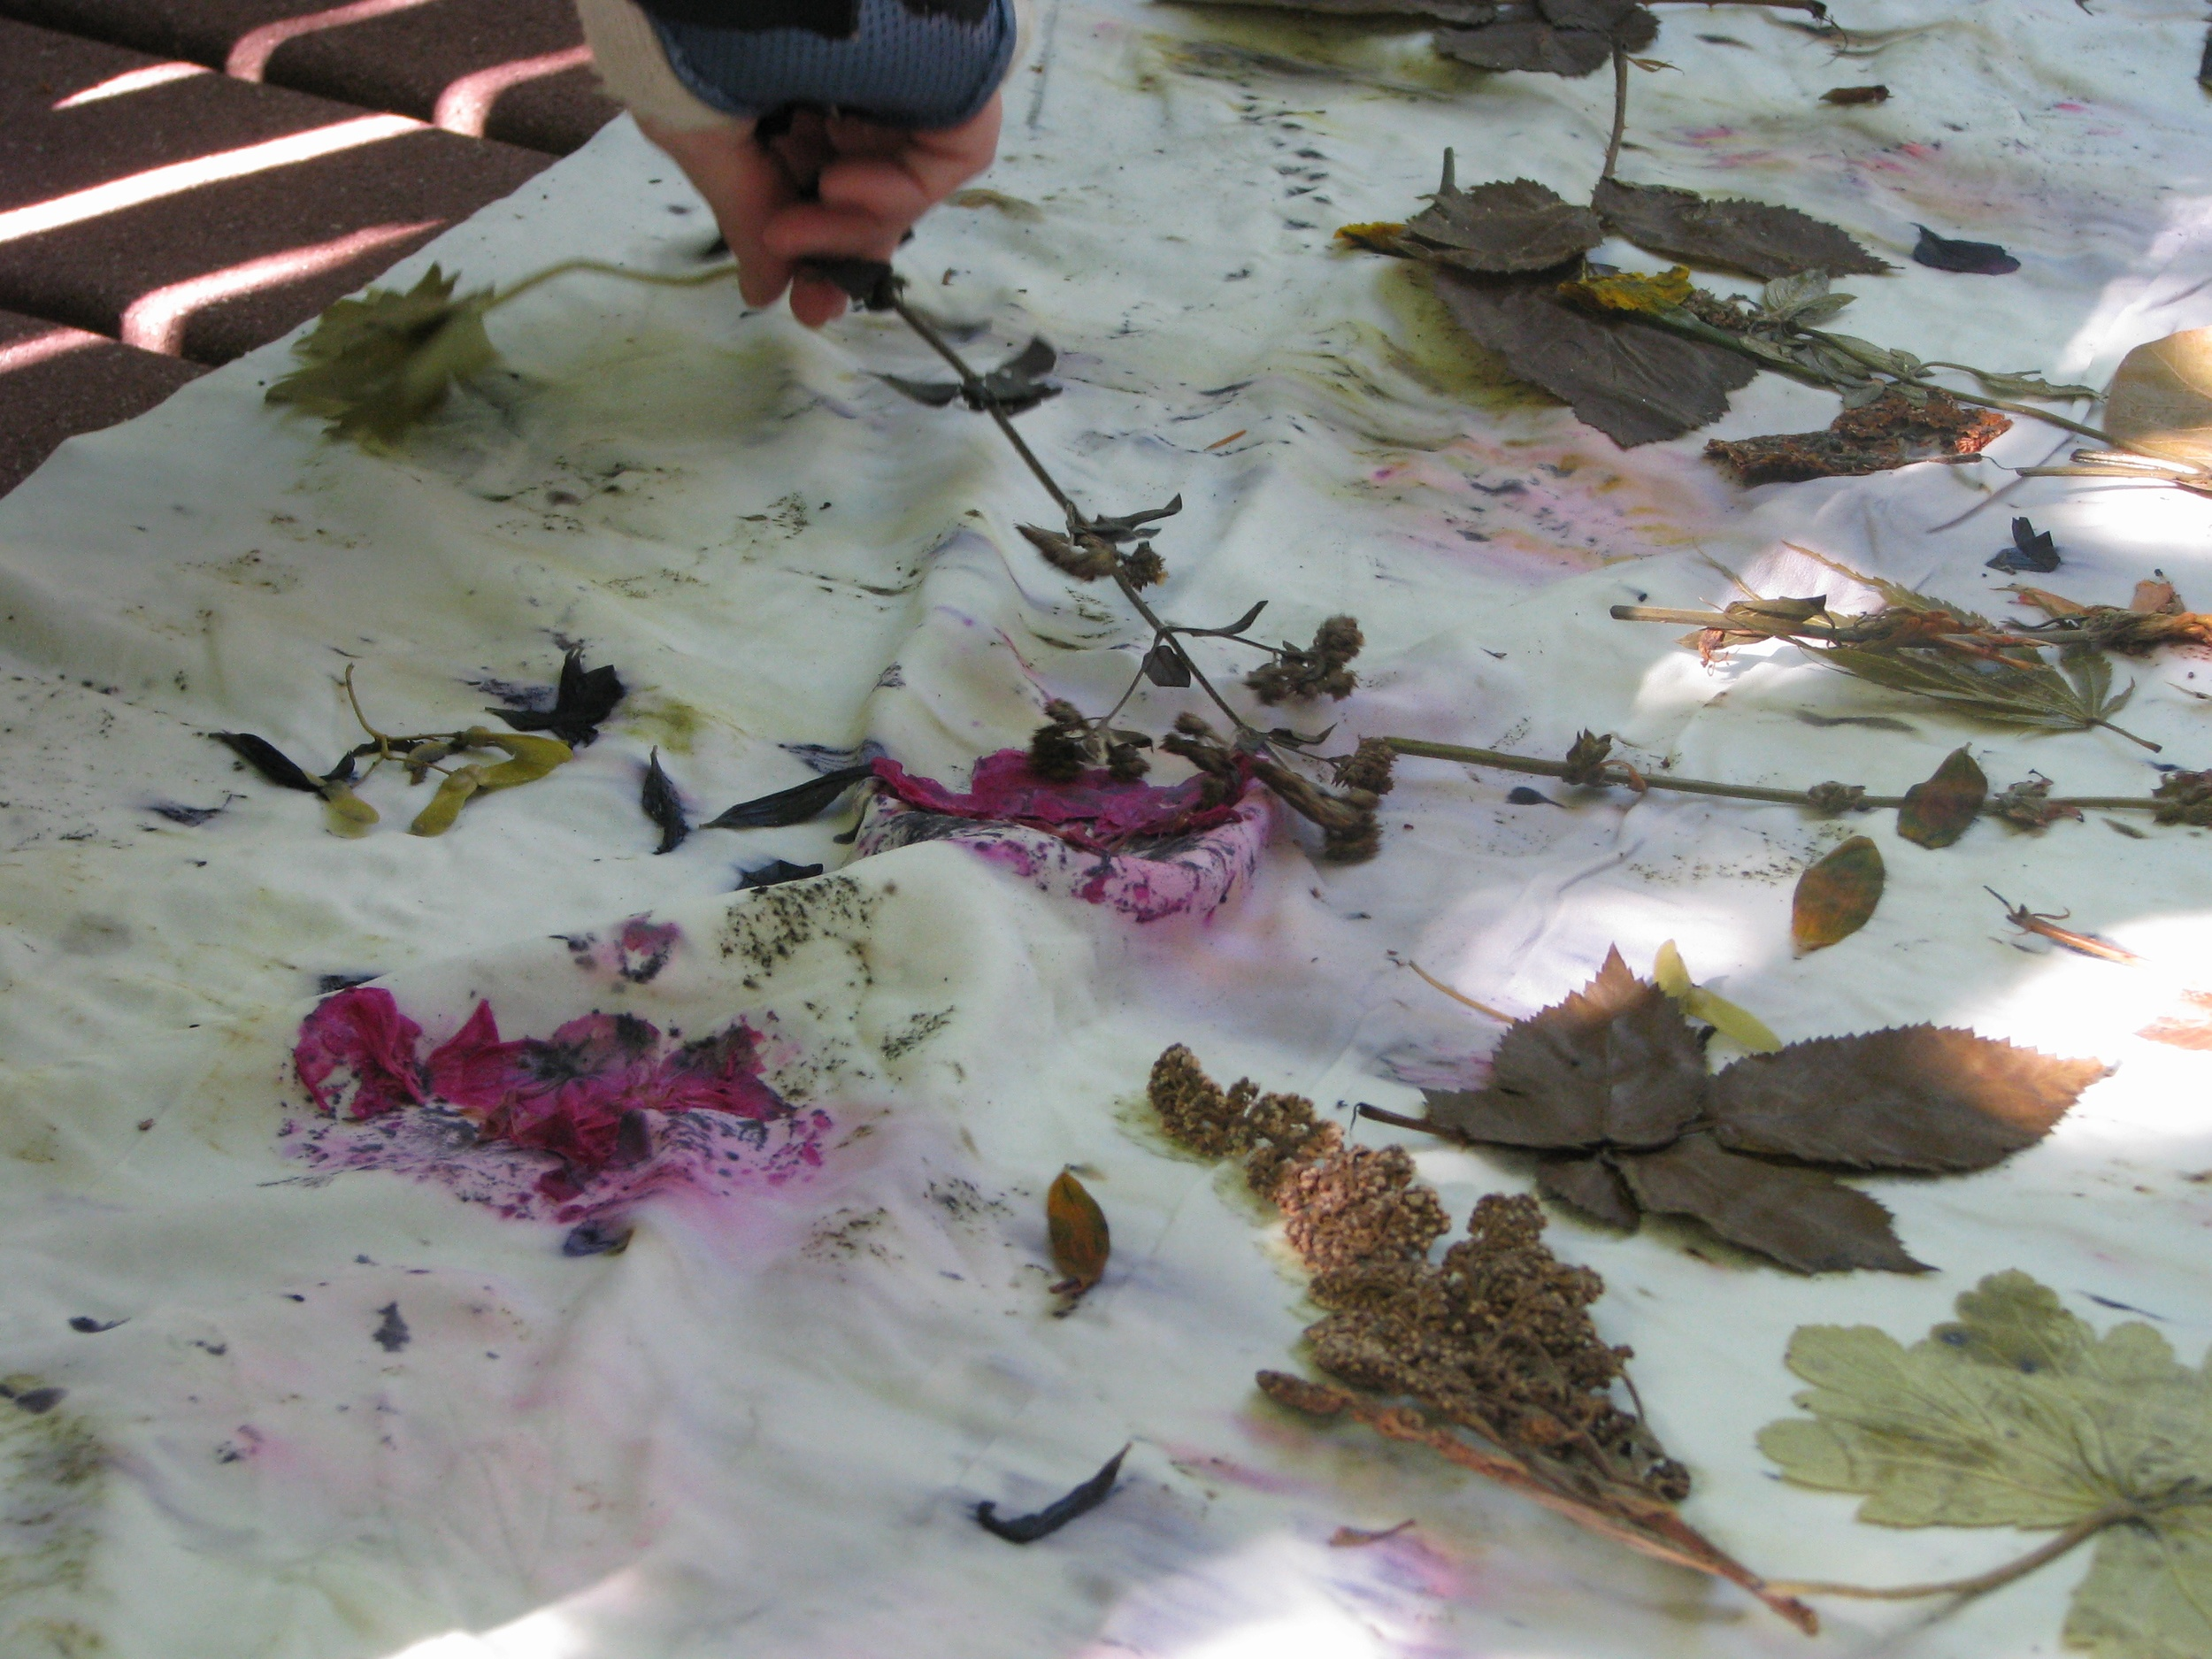 After steaming the leaves and flowers are peeled off to reveal prints below